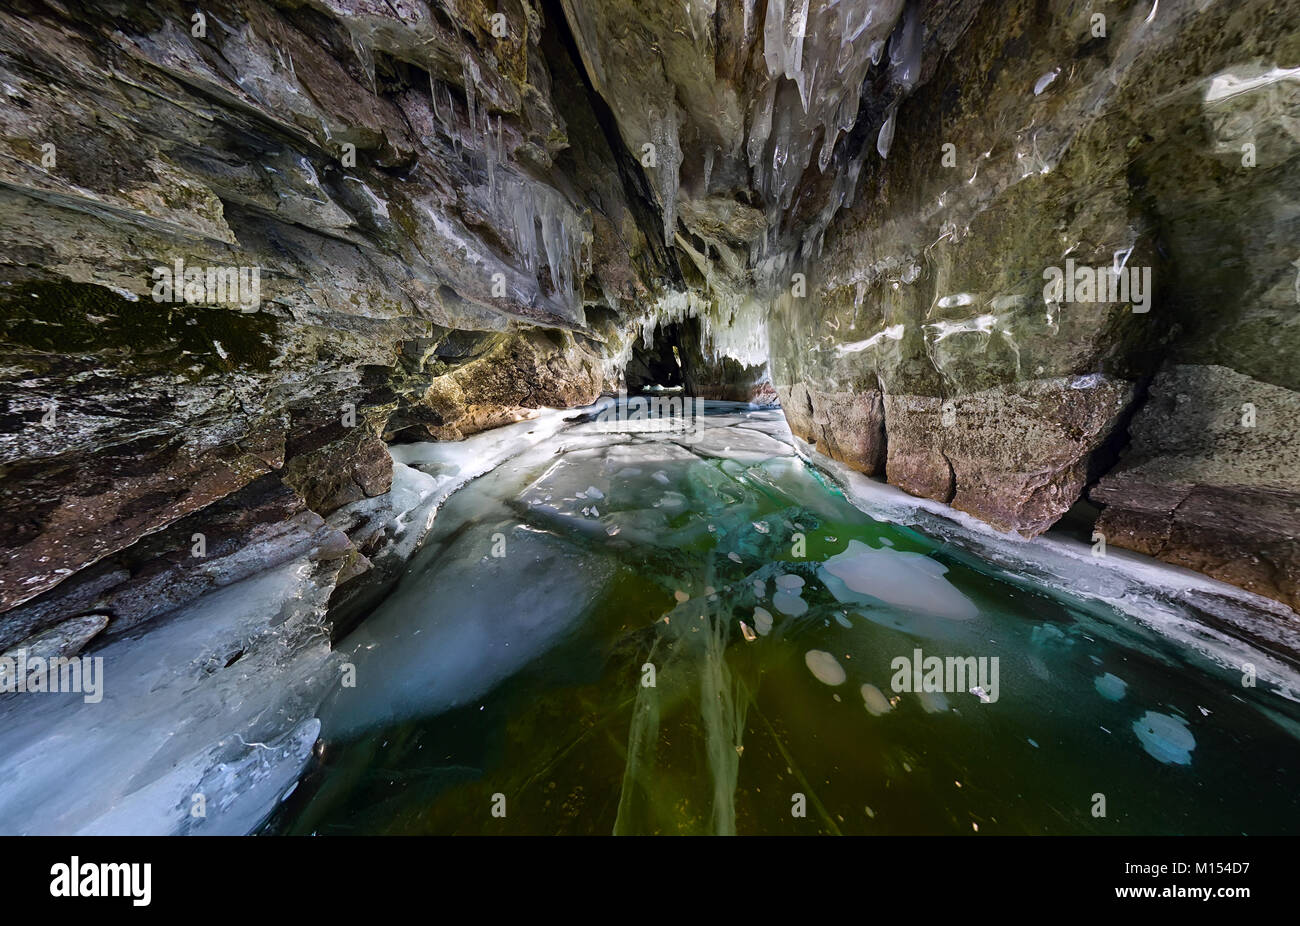 Panorama inside ice cave with icicles on Baikal, Olkhon. - Stock Image